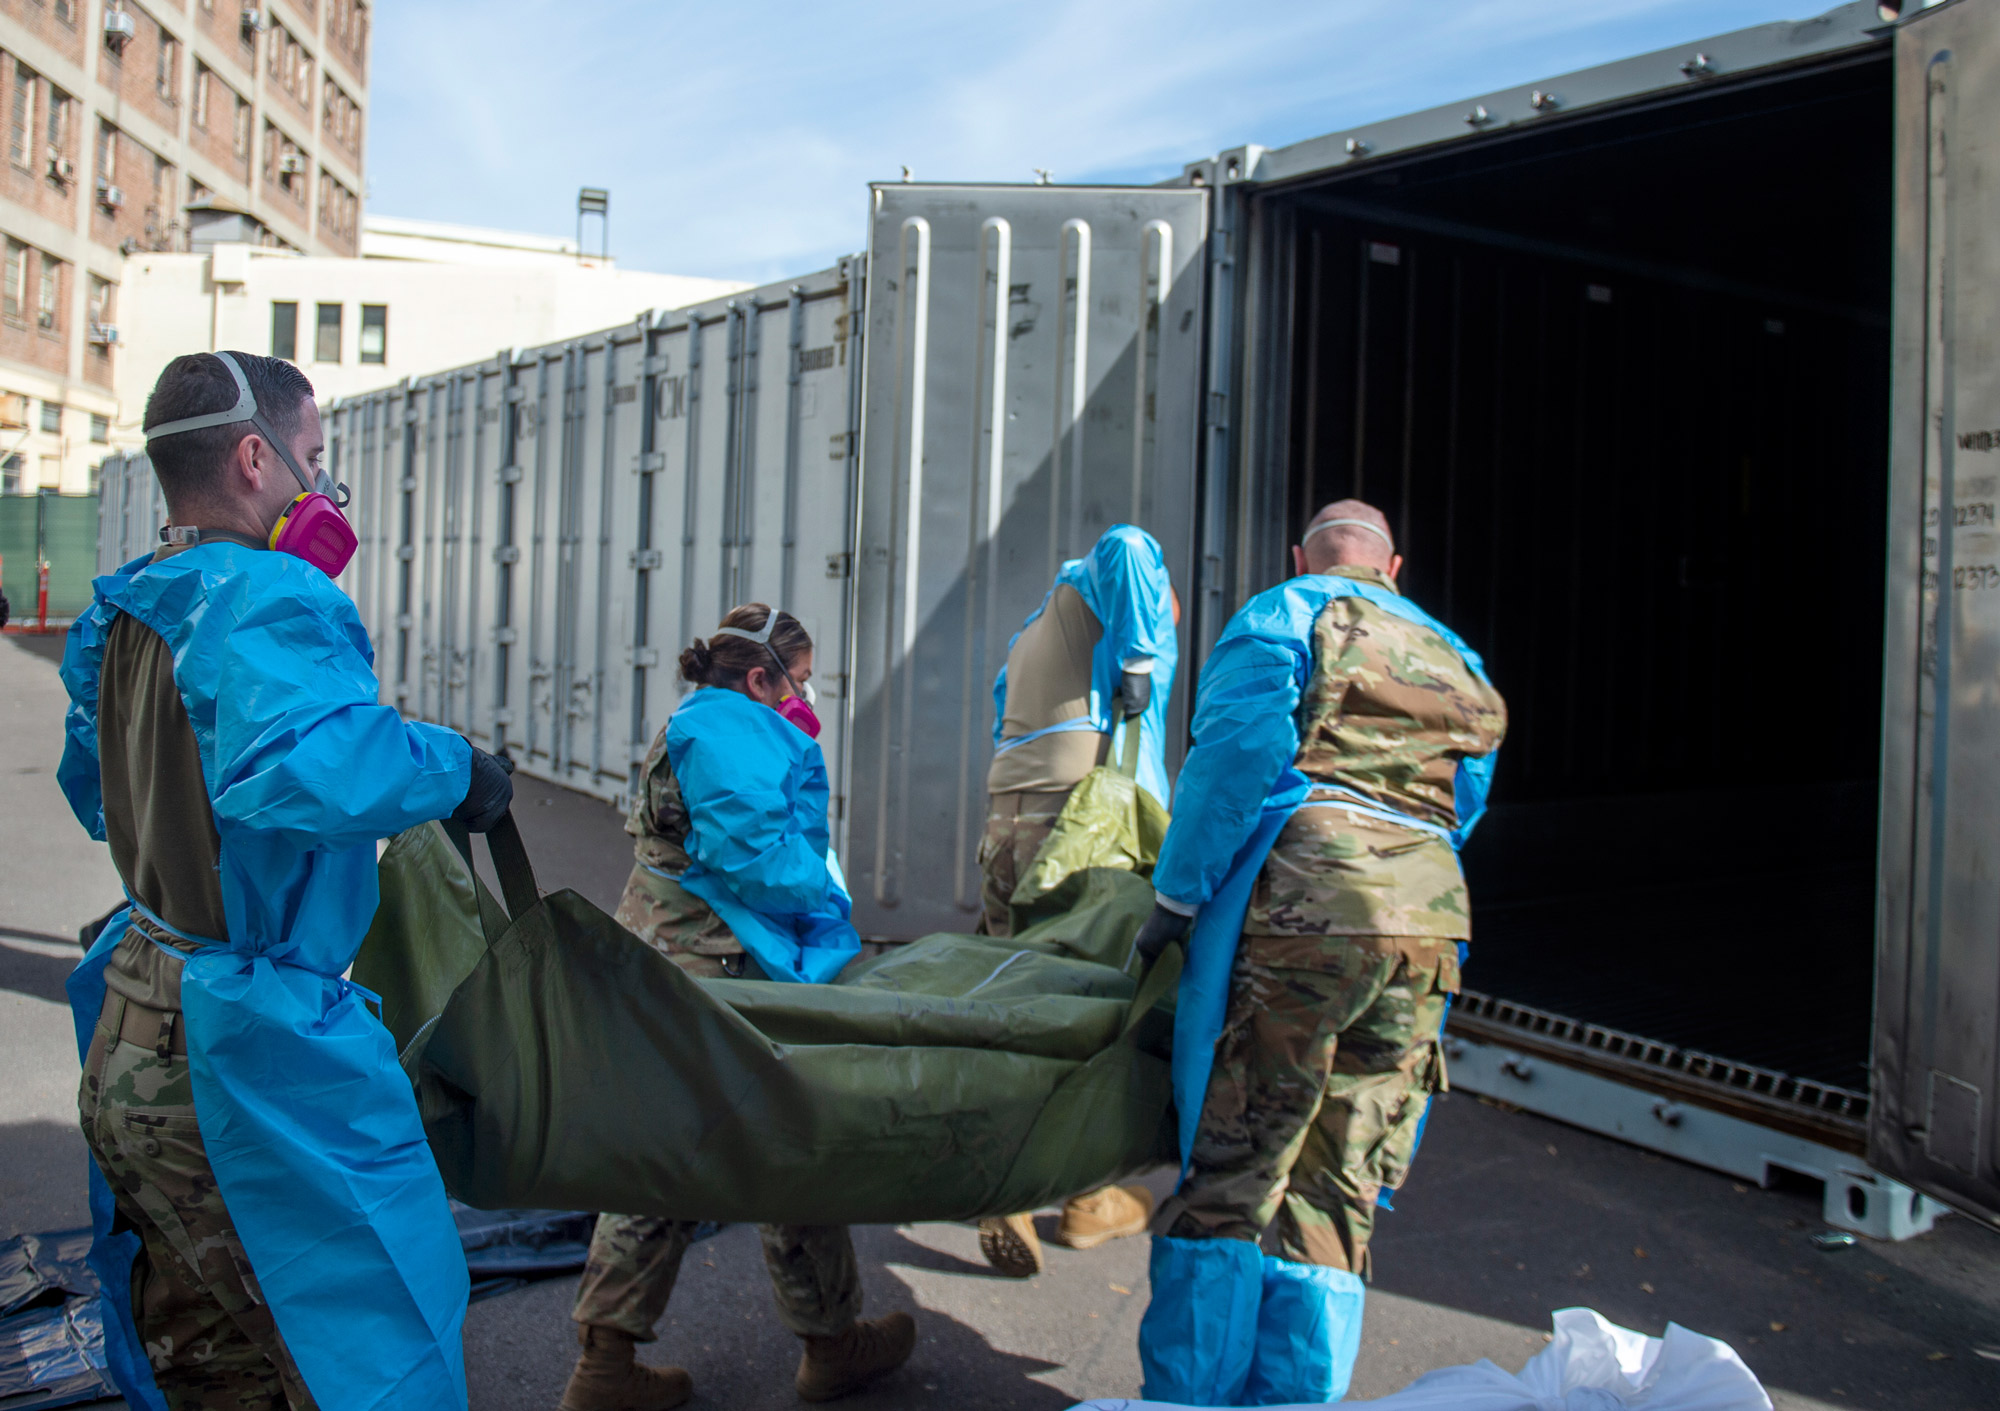 Members of the National Guard assist with processing Covid-19 deaths and placing them into temporary storage at LA County Medical Examiner-Coroner Office in Los Angeles on January 12 in Los Angeles.